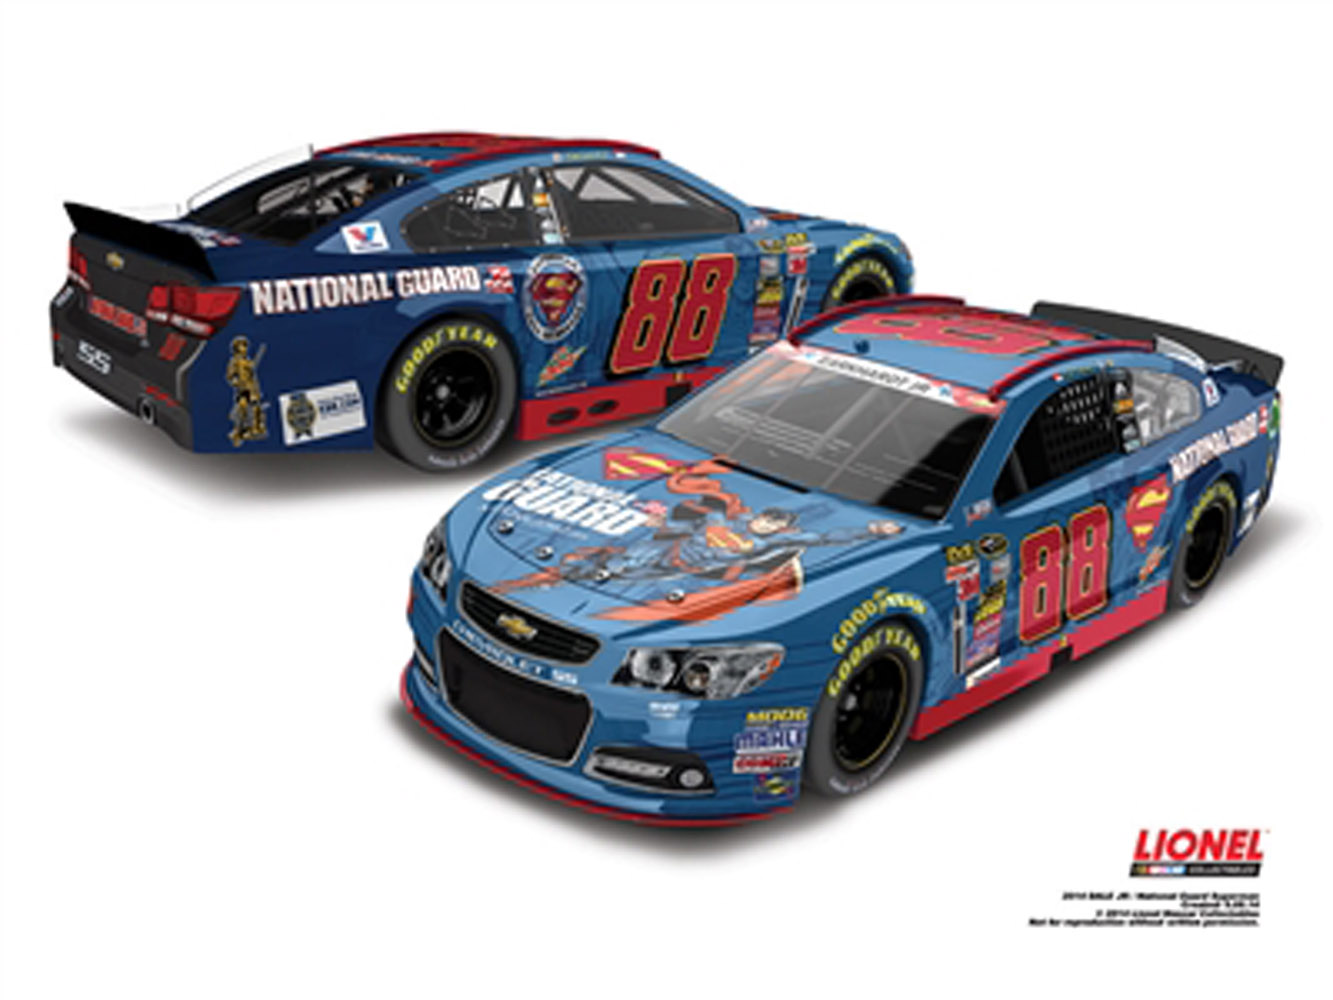 2014 Dale Earnhardt Jr #88 Superman 1:24 Nascar Diecast Car